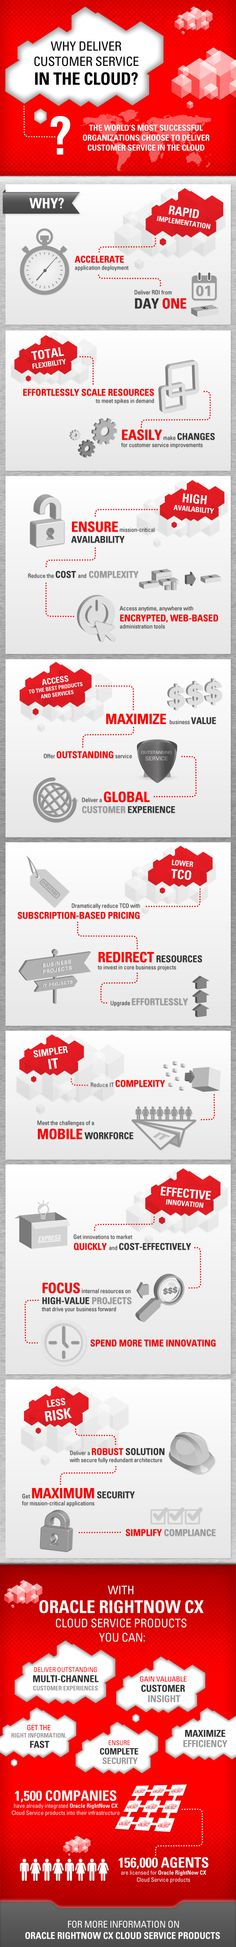 Oracle: Why Deliver Customer Service in the Cloud?